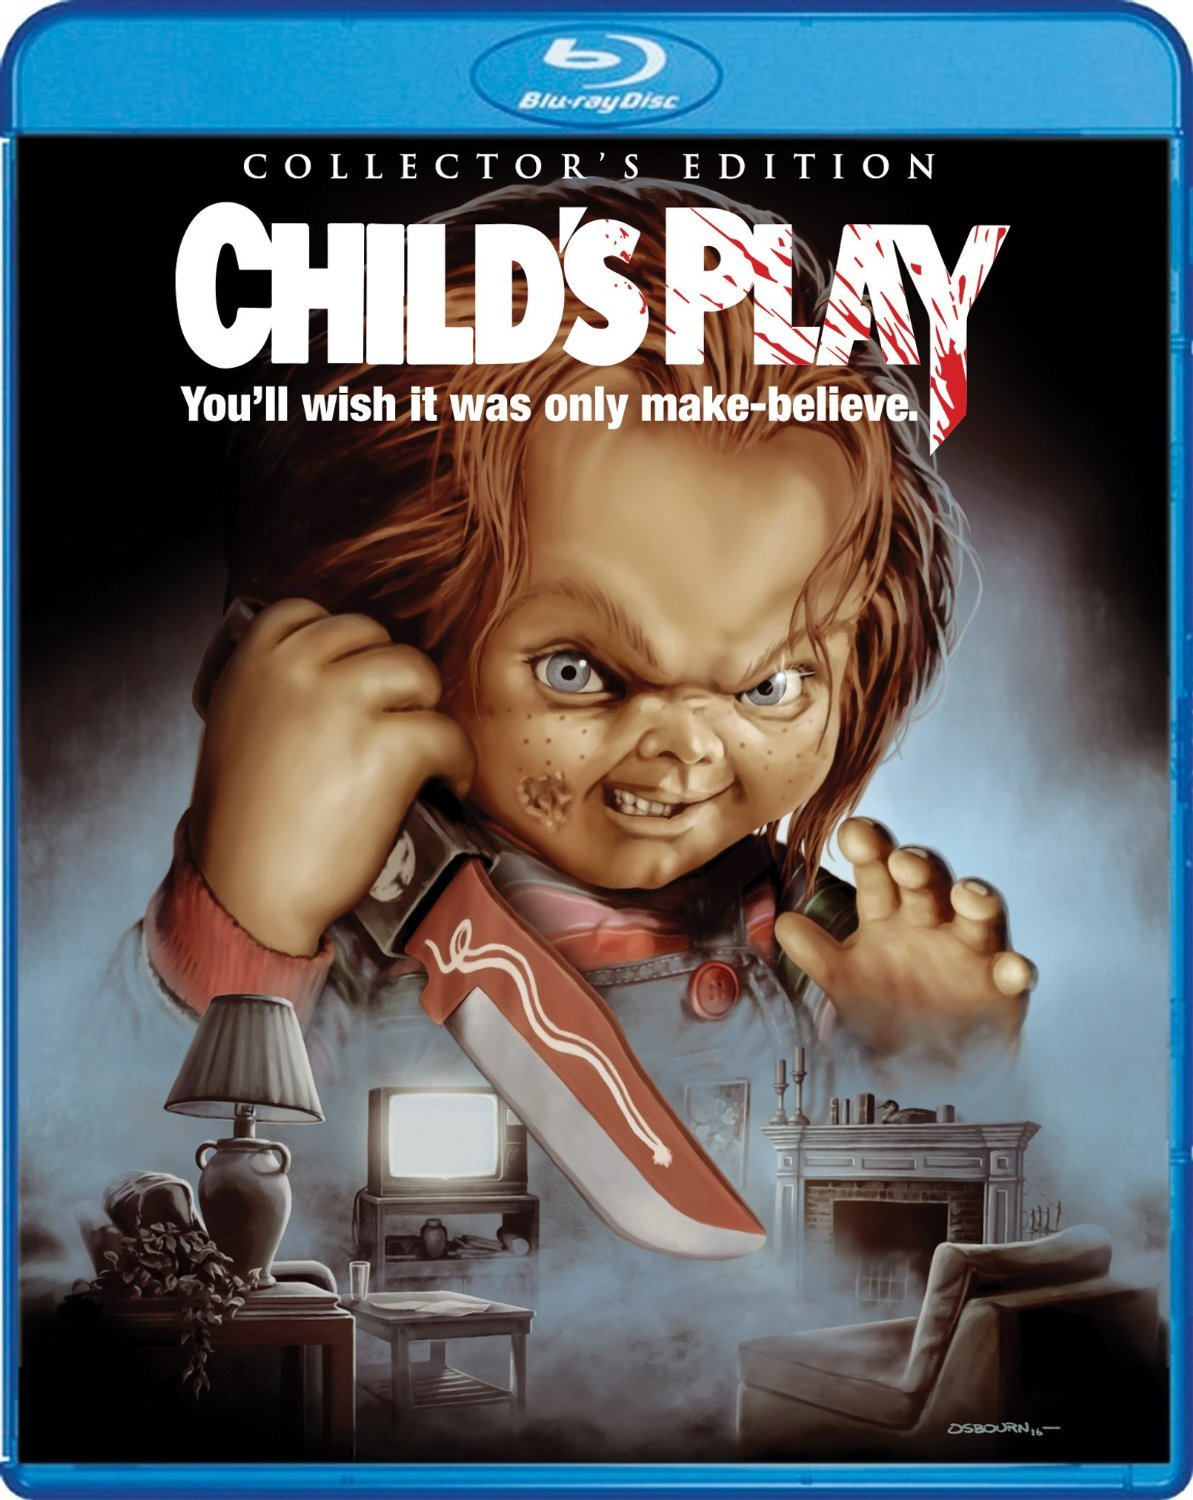 159551_front - Child's Play Collector's Edition Blu-Ray Coming October 18th